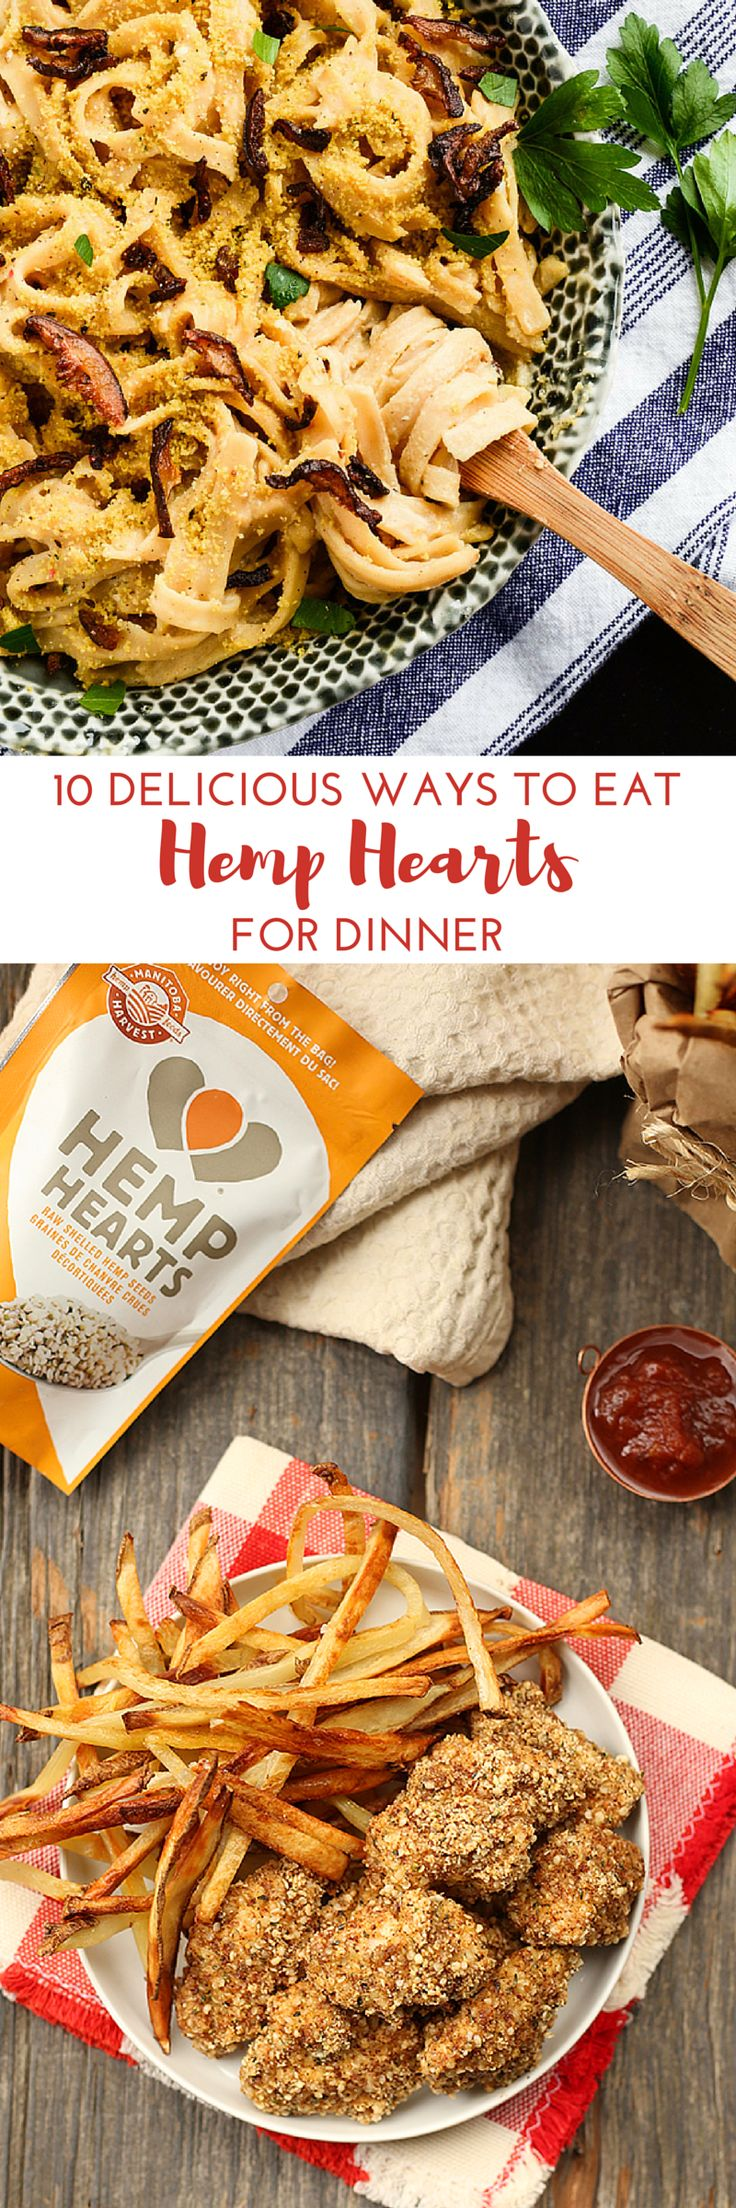 You may already use Hemp Hearts in your breakfast routine or even add them to your salads for lunch but have you ever tried having them for dinner? Besides just sprinkling Hemp Hearts on your supper for some extra protein and omegas, you can also use them as a breading for chicken or fish, blend them with fresh basil to make a pesto, use them as a topping on Mac & Cheese and so much more! Here are 10 delicious ways to incorporate Hemp Hearts into your dinner.